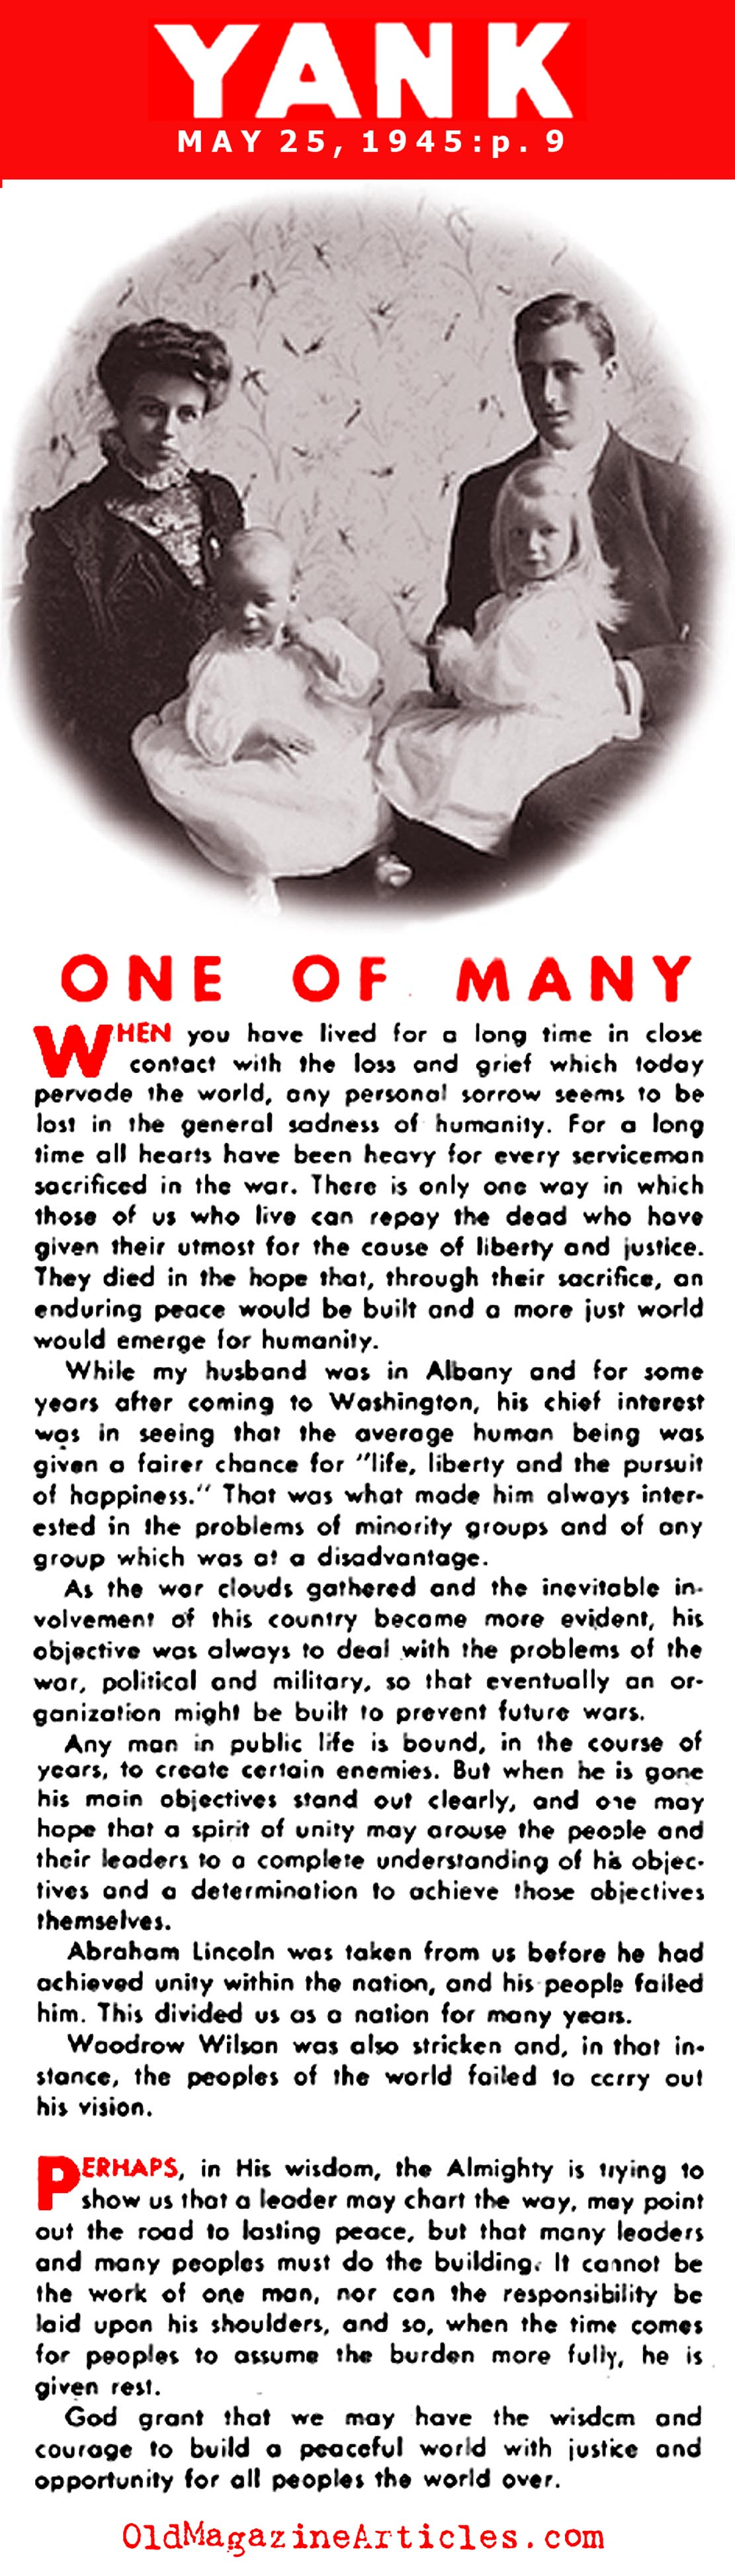 Eleanor Roosevelt on the Death of FDR (Yank Magazine, 1945)